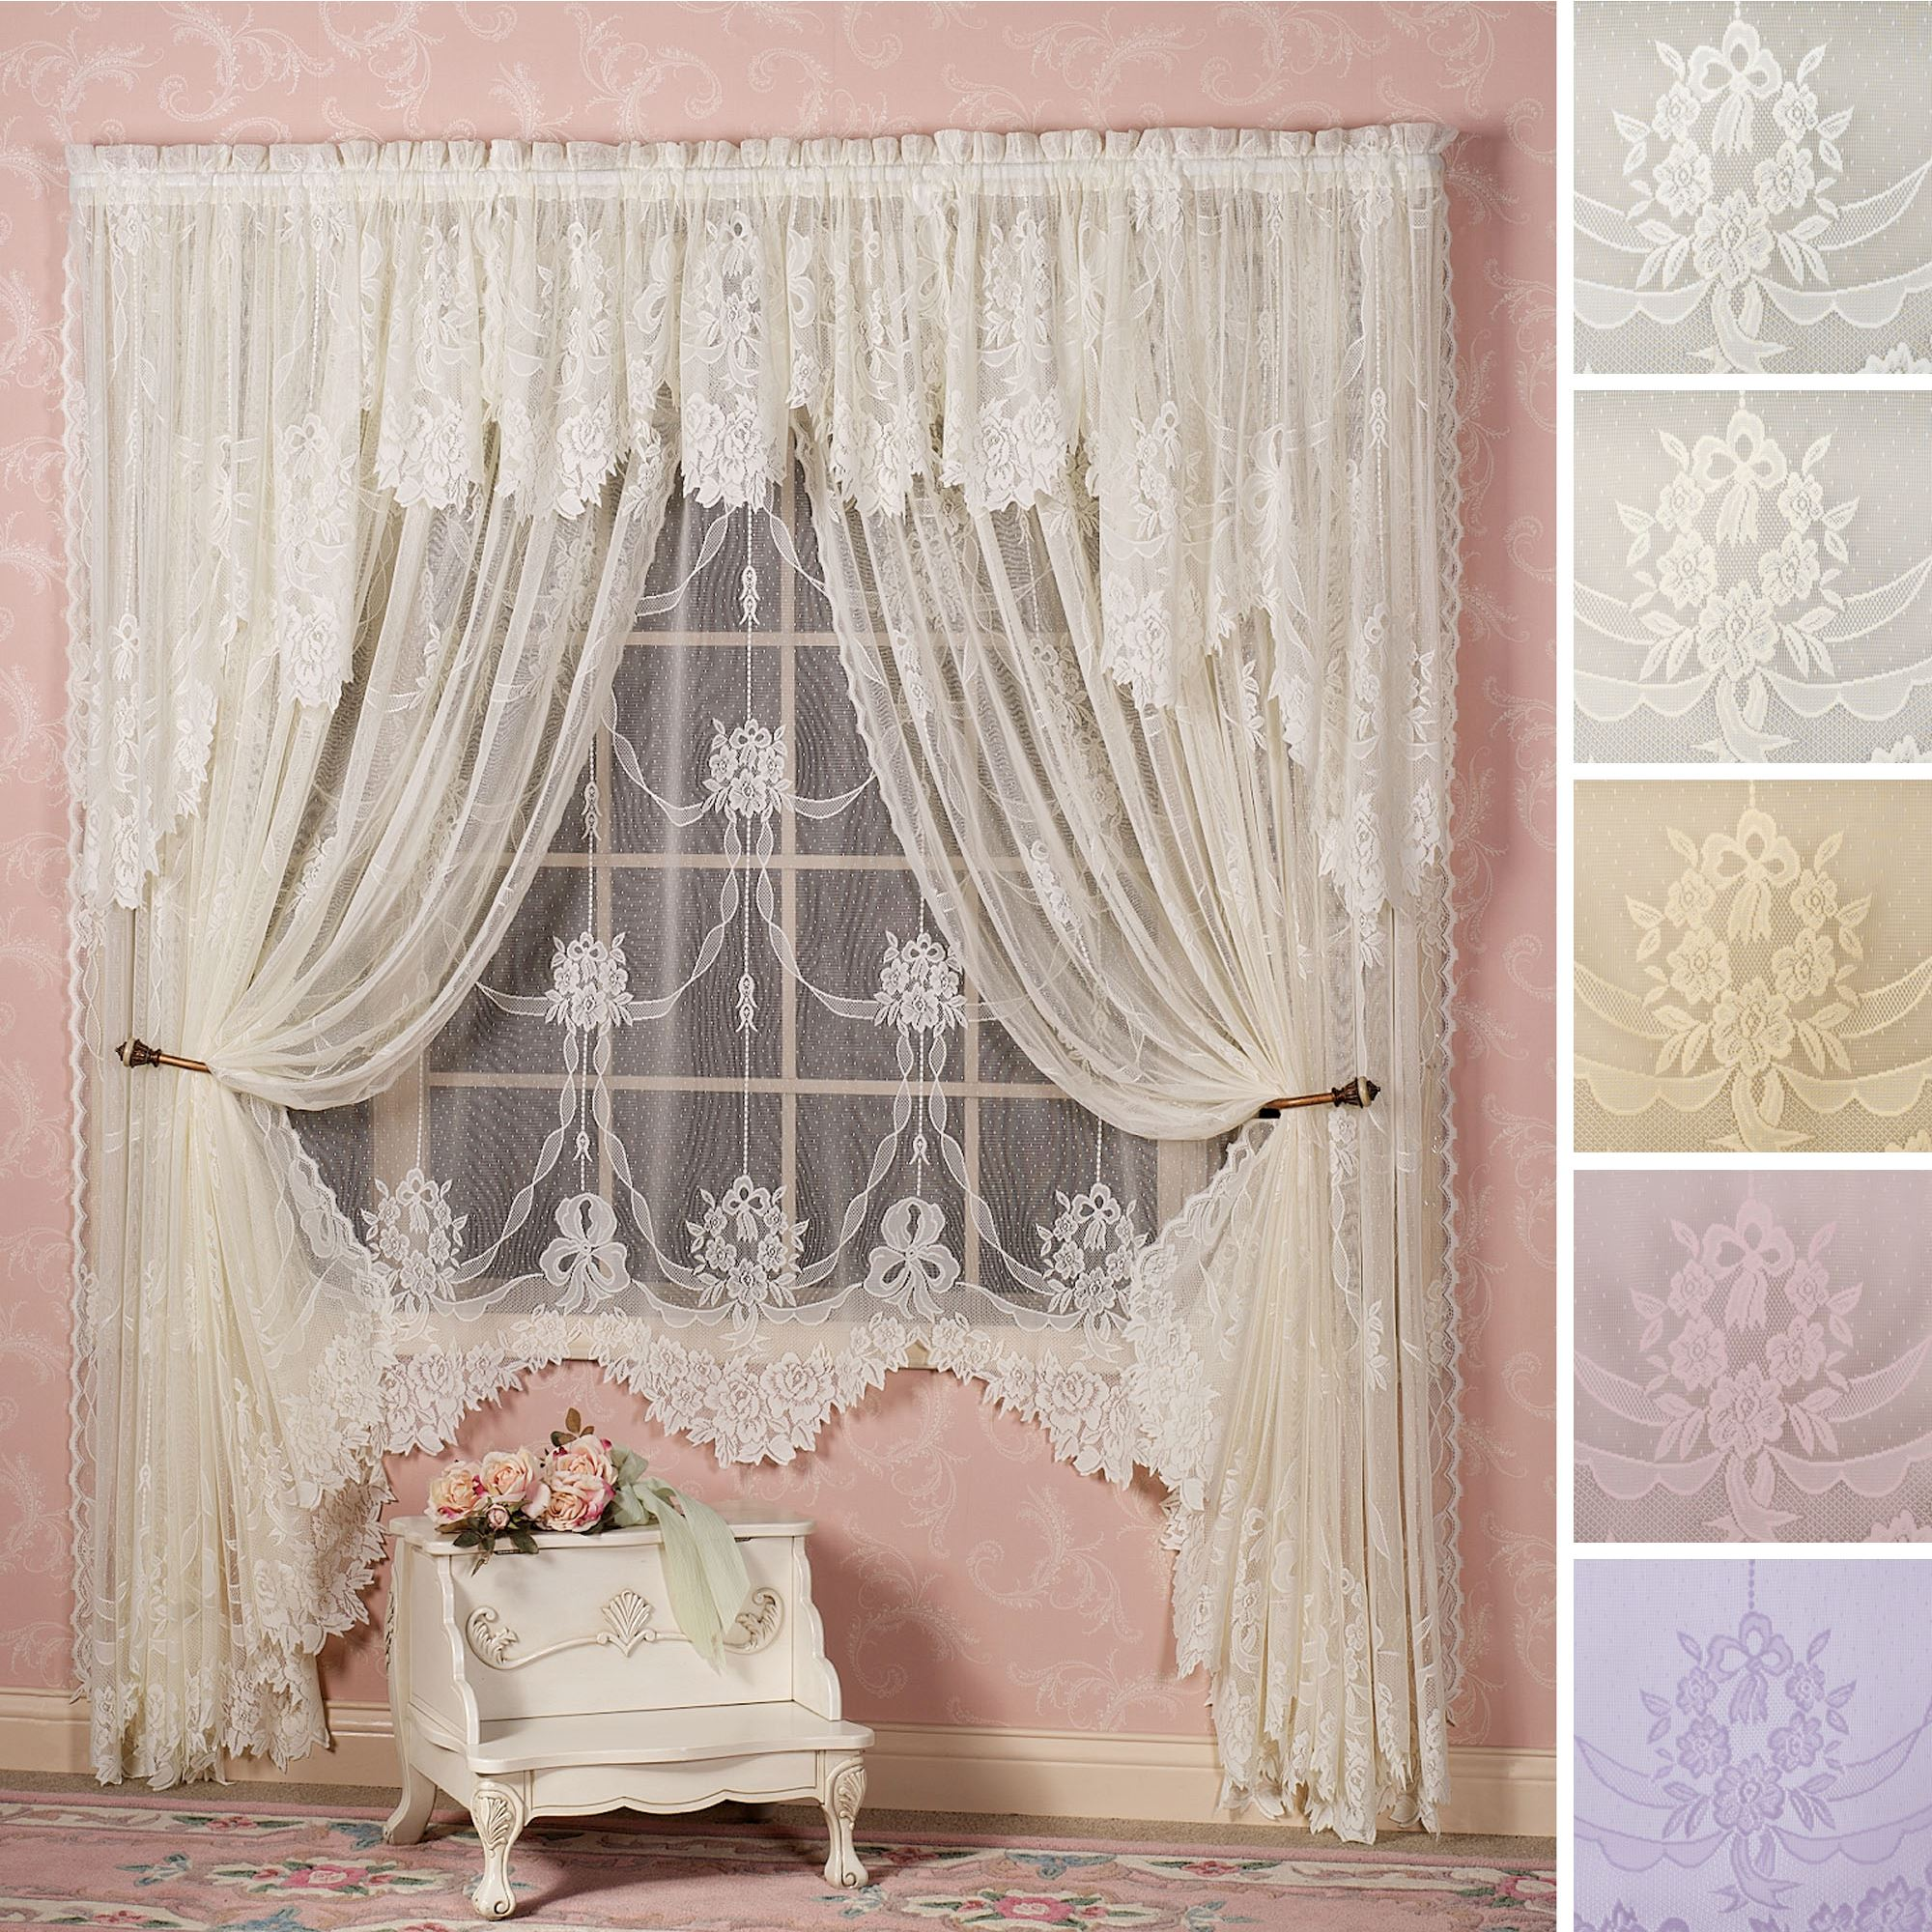 lace curtains click to expand MQDYSCF